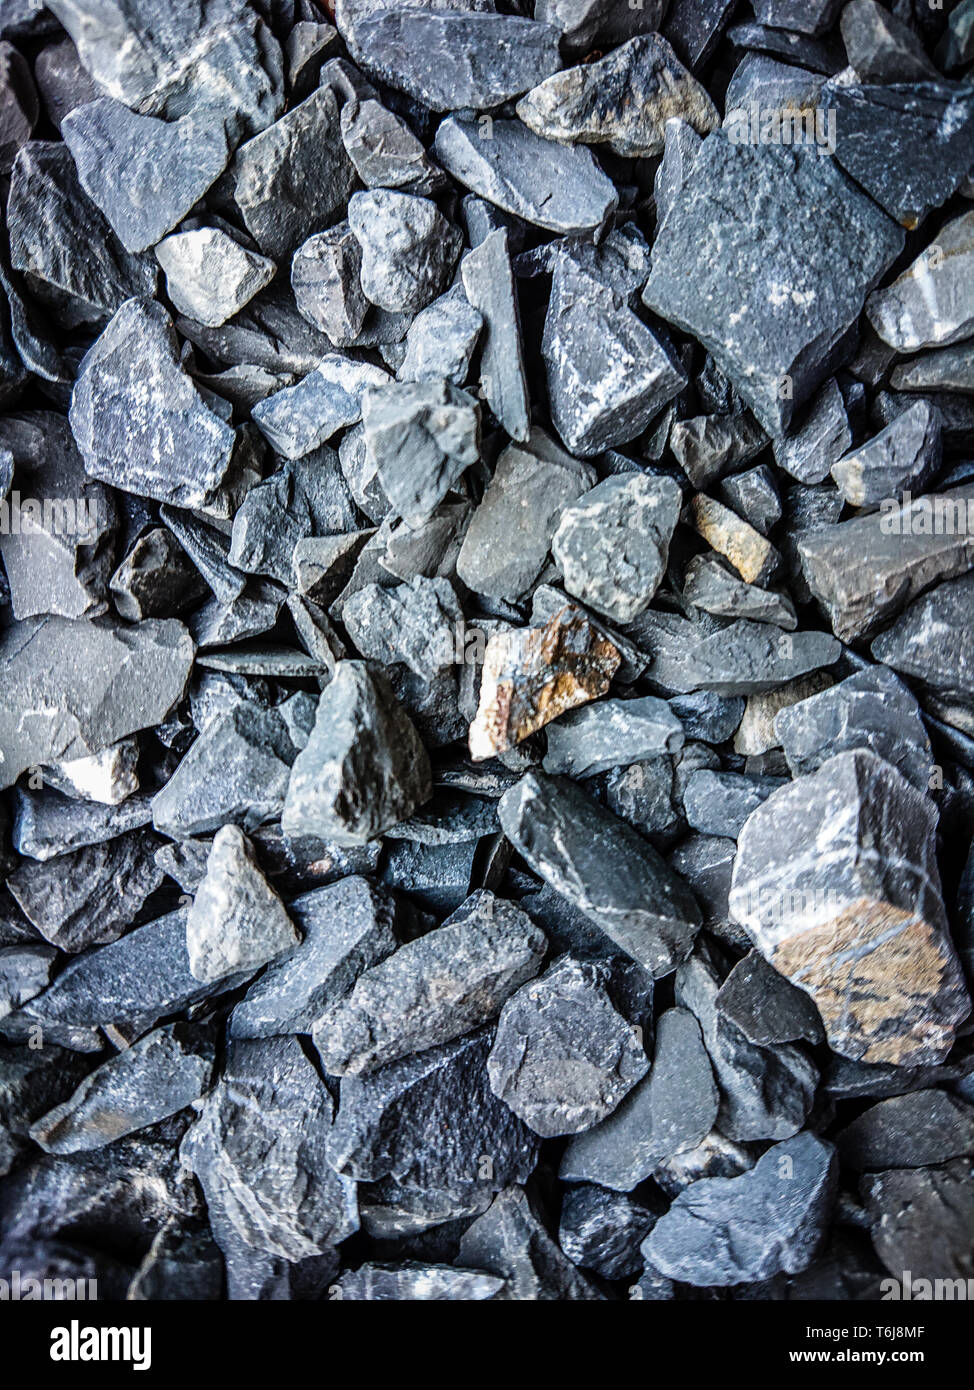 Rock surface texture background.Stone material pattern.Old gray rock on ground - Stock Image